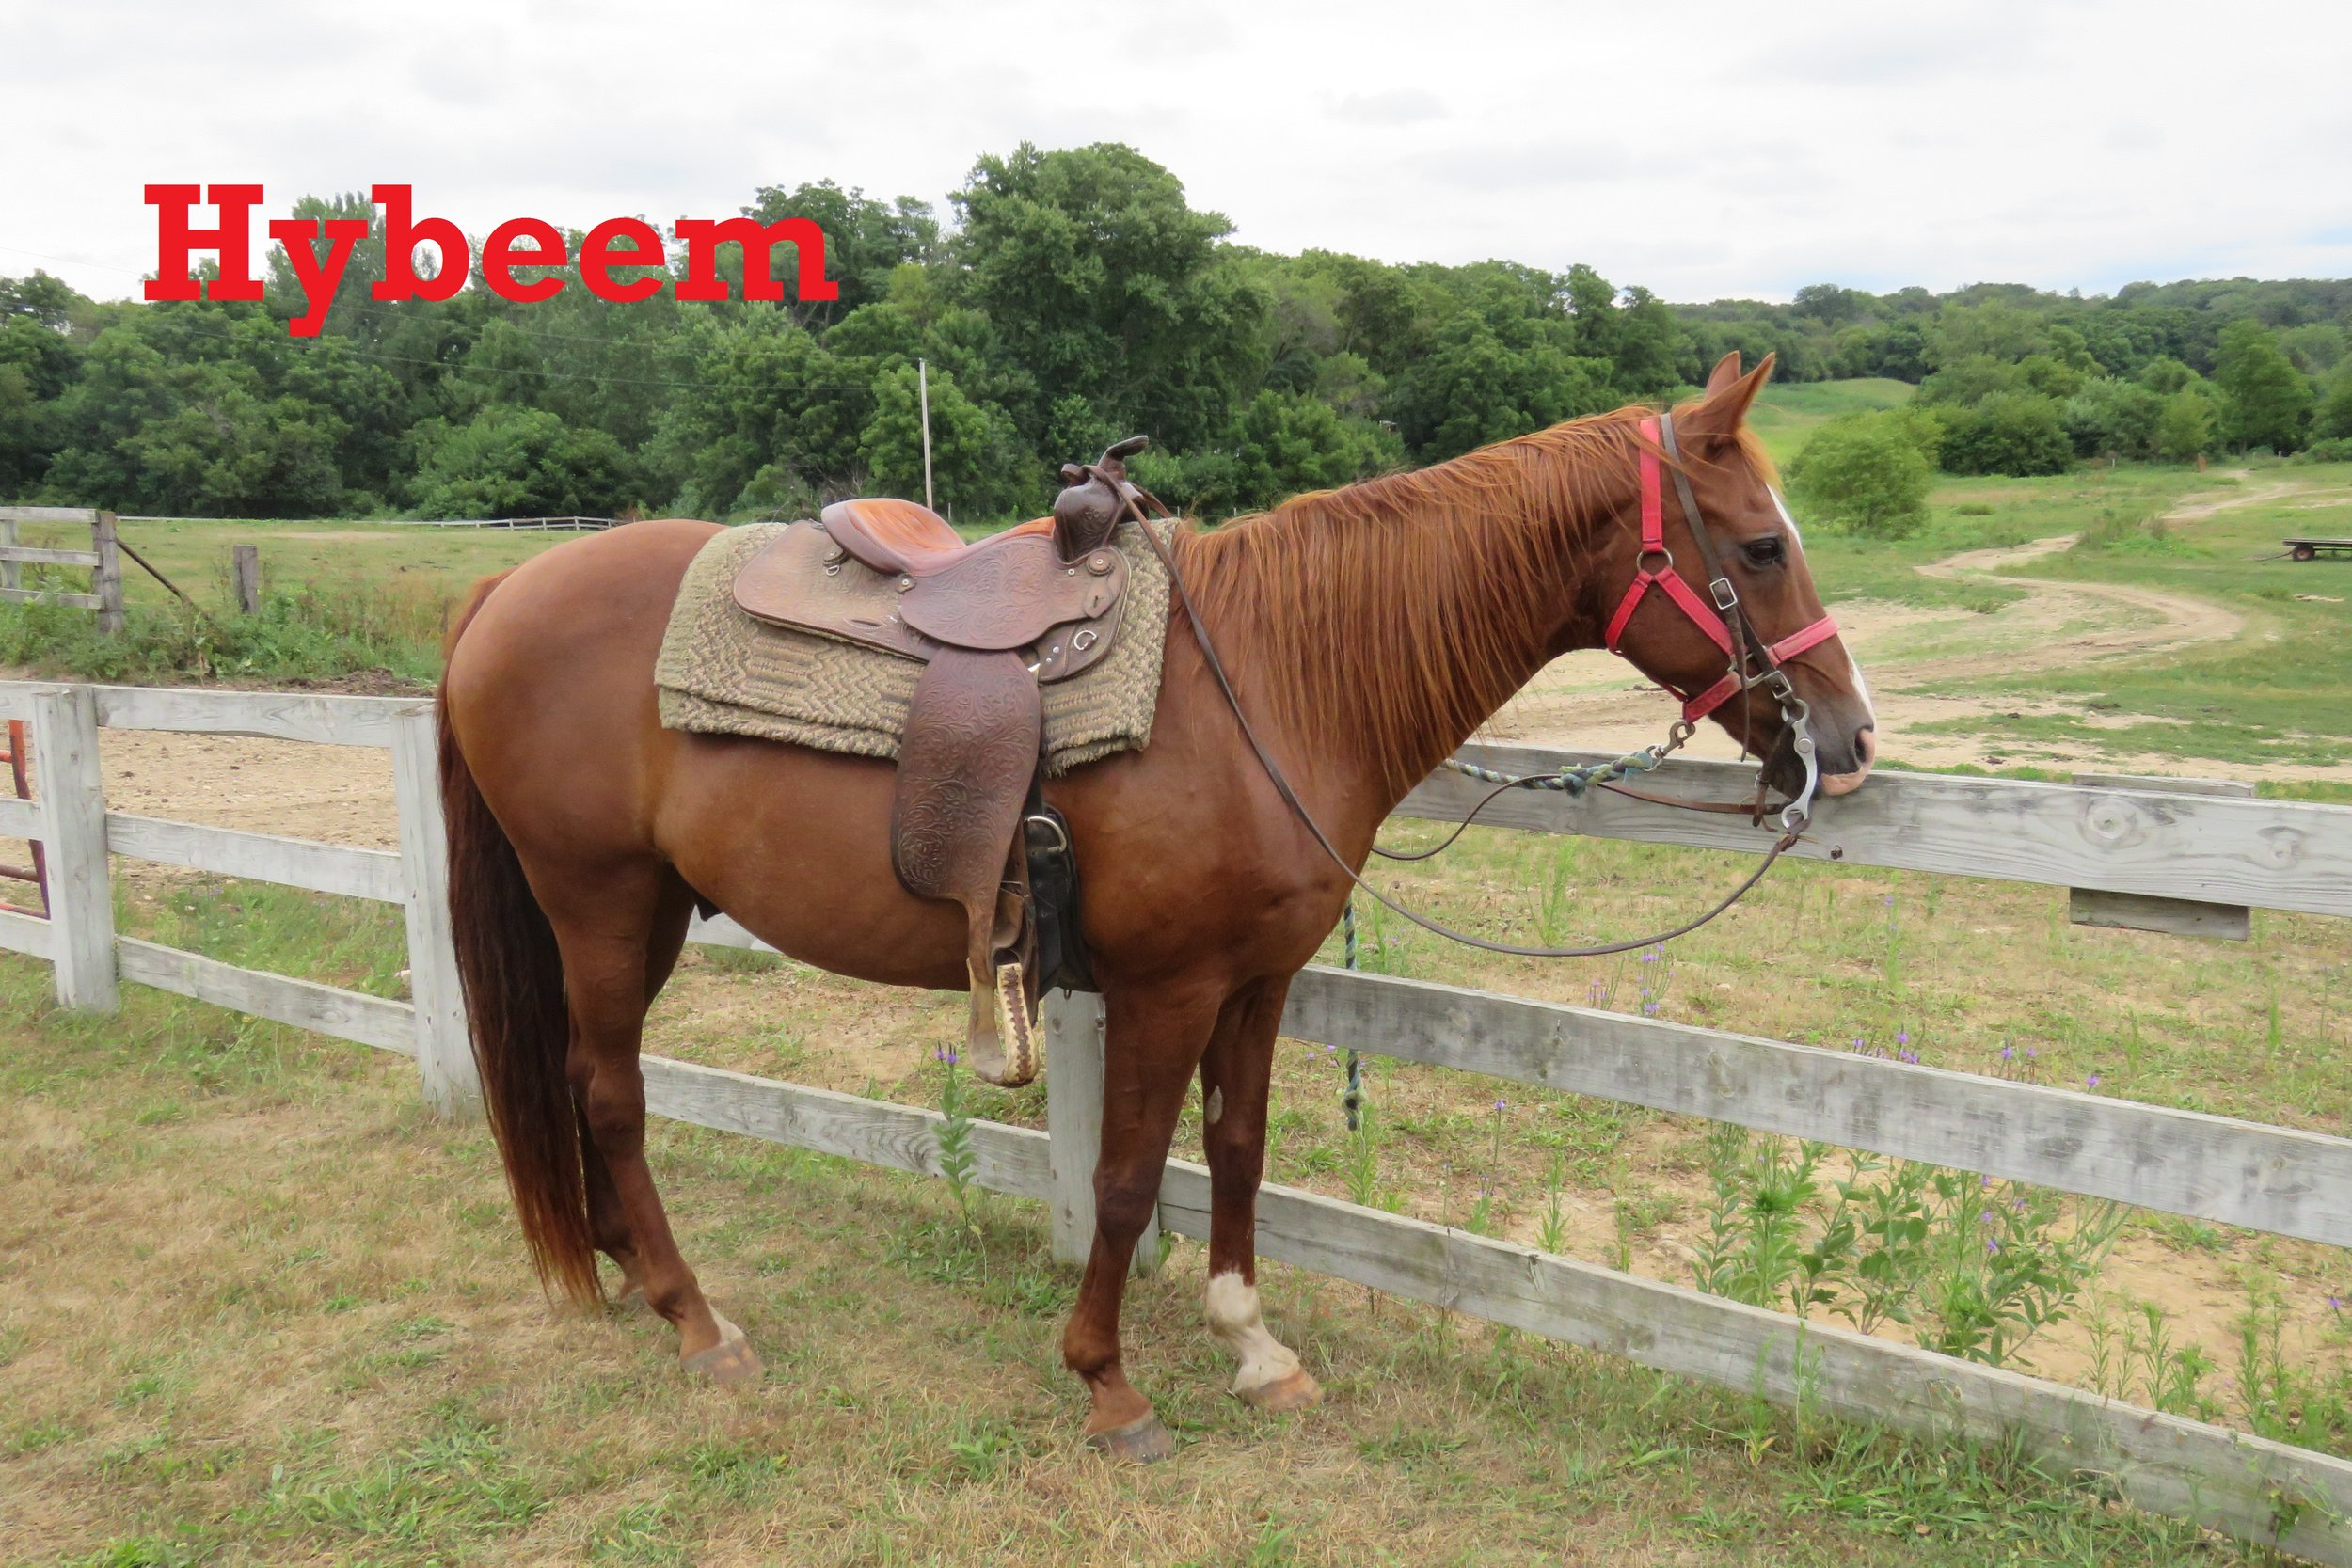 Hybeem- Line Horse, Gelding, Quarter Horse    My name is Hybeem but people call me Beemer. I have been a staff horse, a counselor horse, and now I'm a line horse because I'm so good with people.